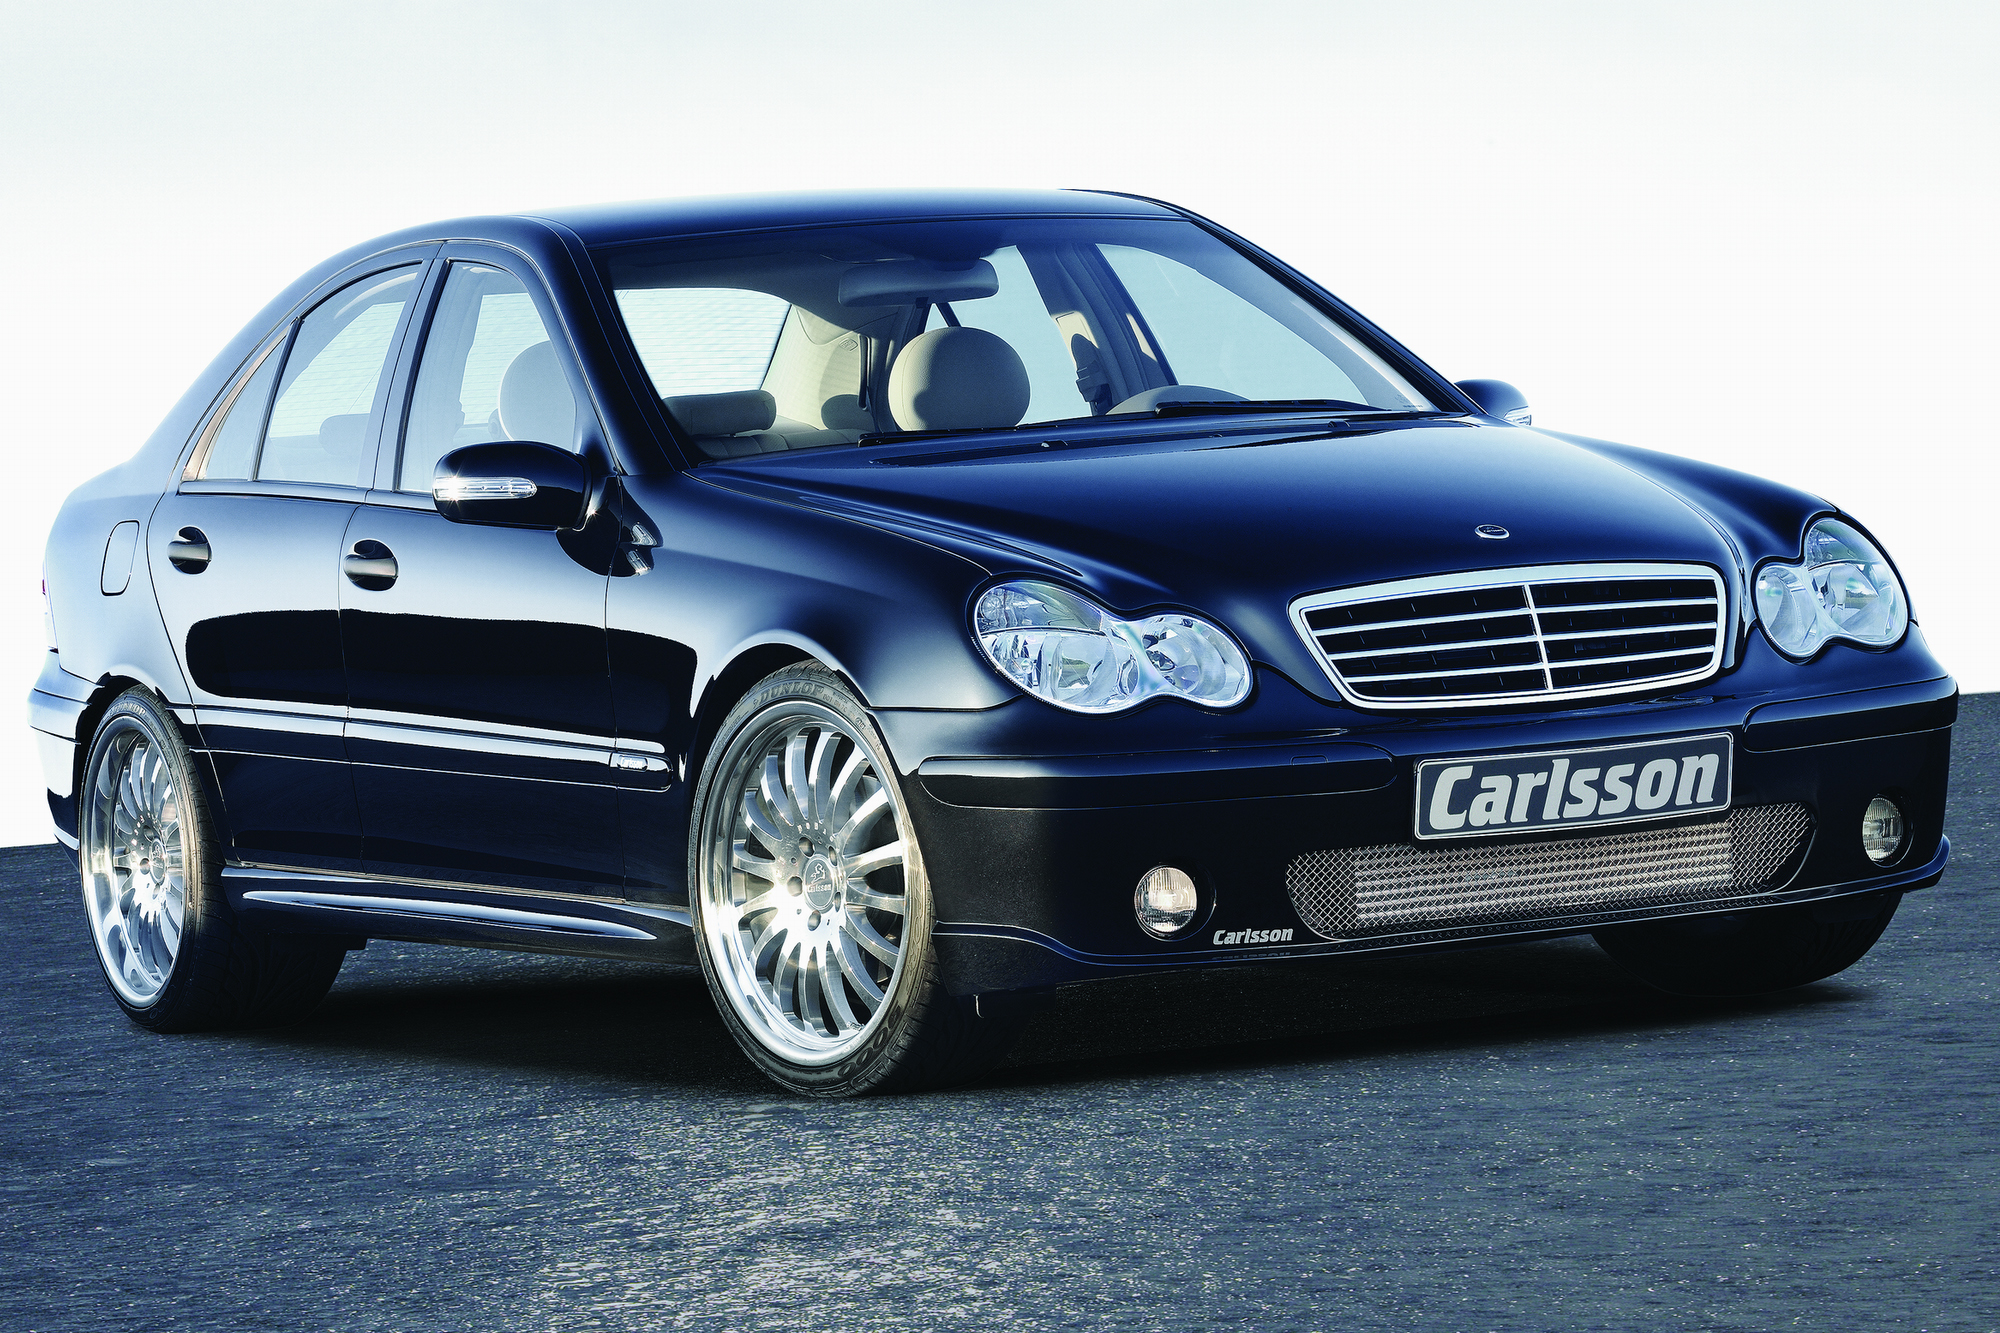 Carlsson-C-Class-W203-front-c-Carlsson